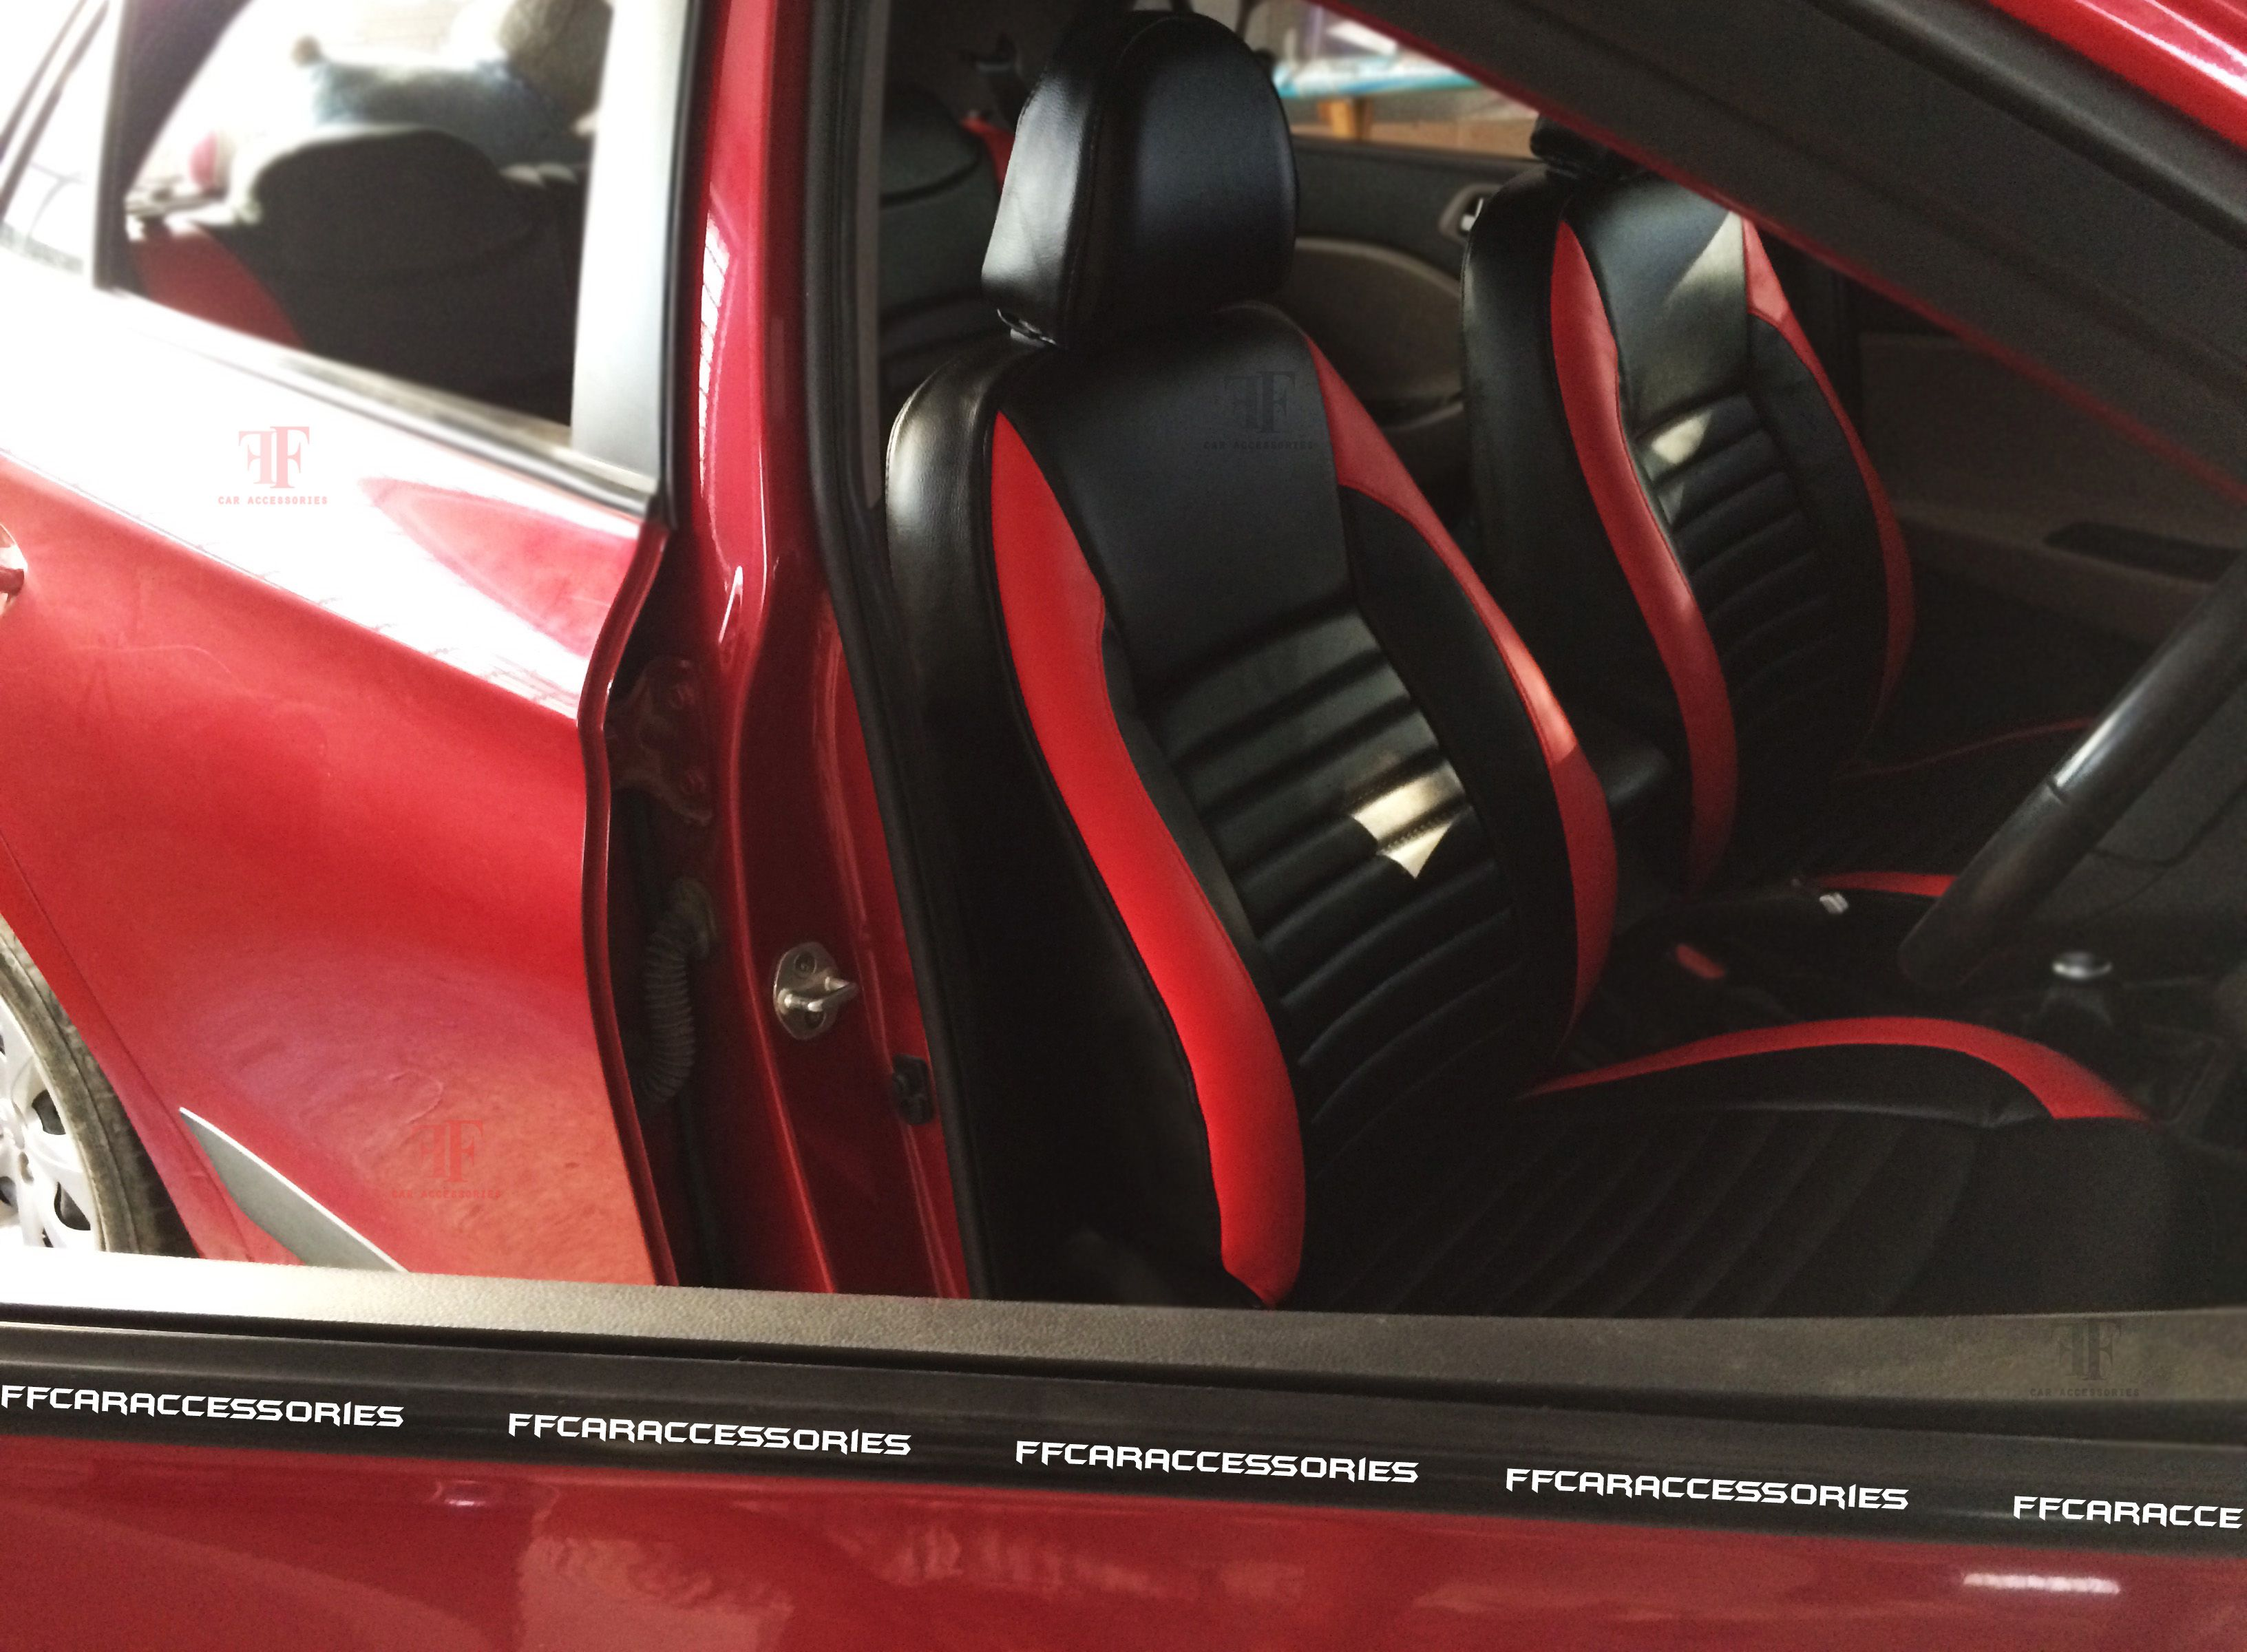 Red Black Combination Of Hyundai I 20 Customised Seat Cover Gives